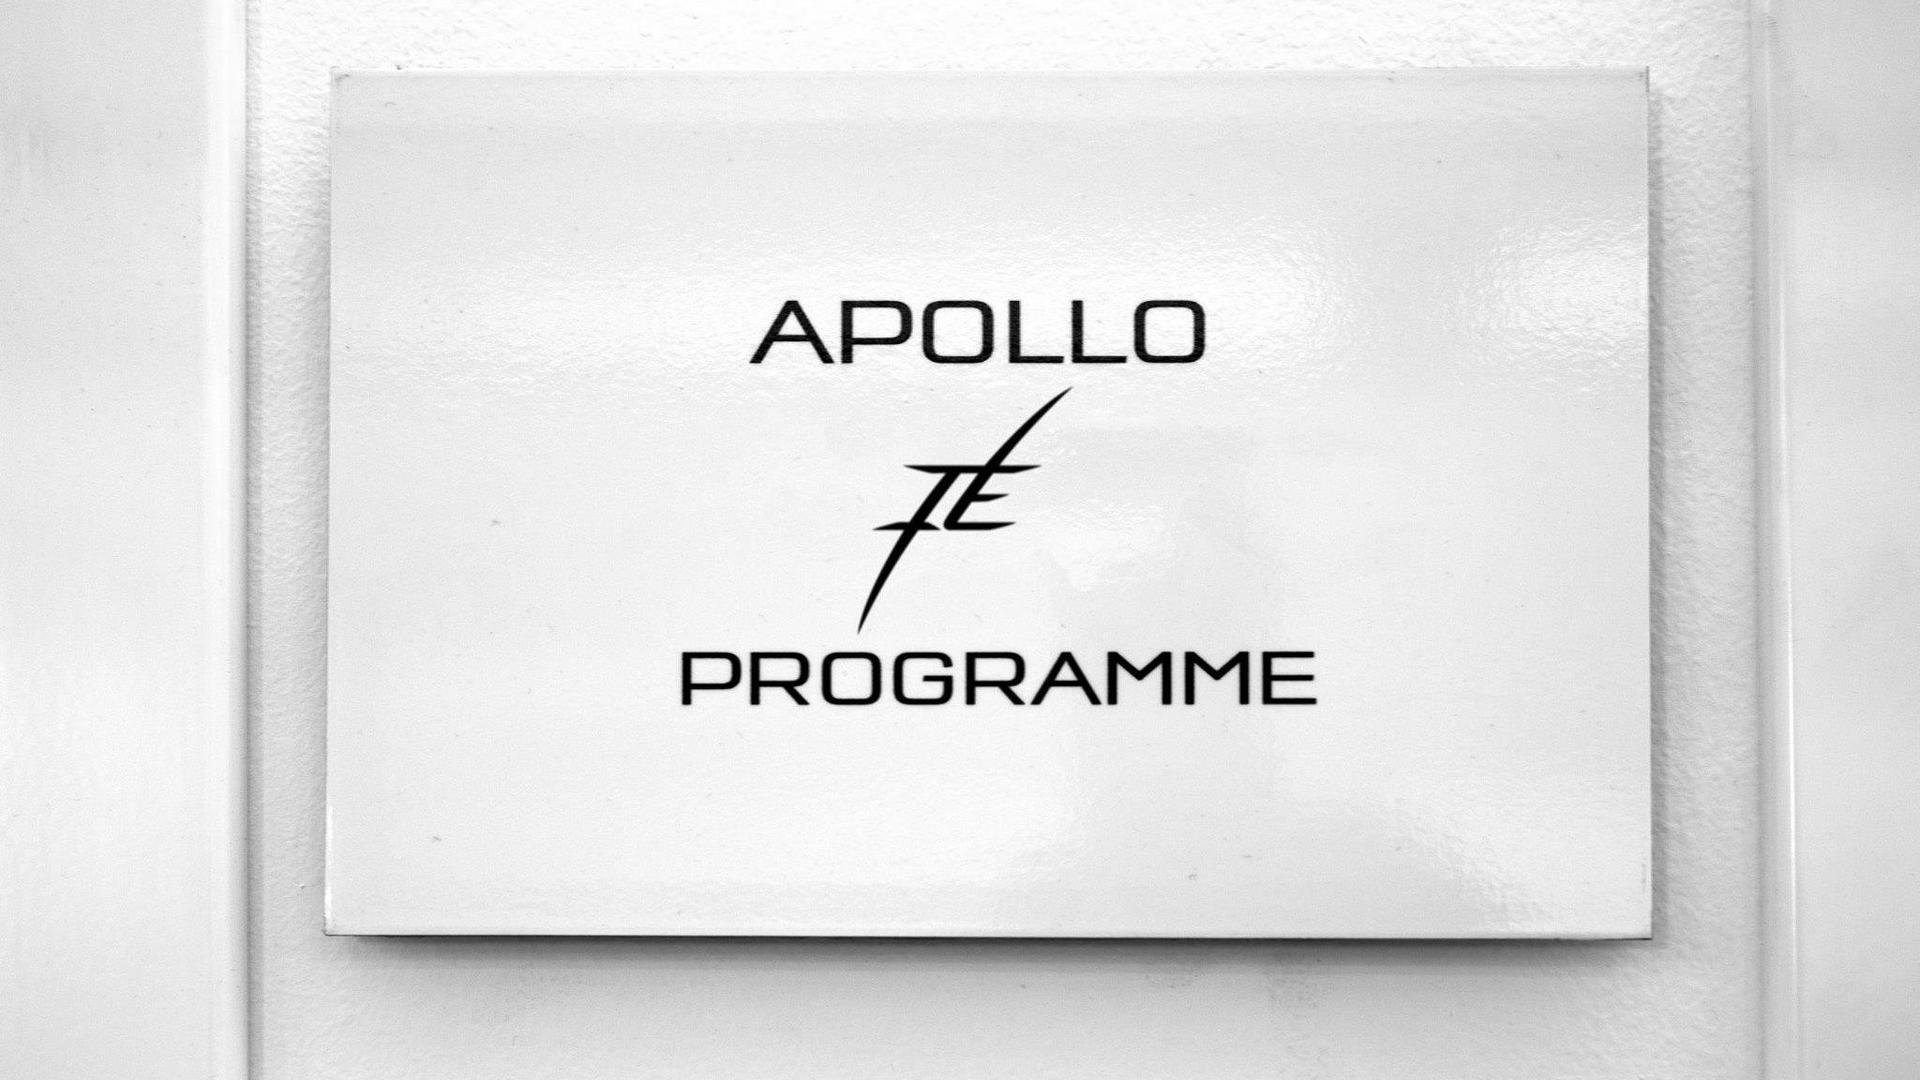 Apollo-IE_teasers_08